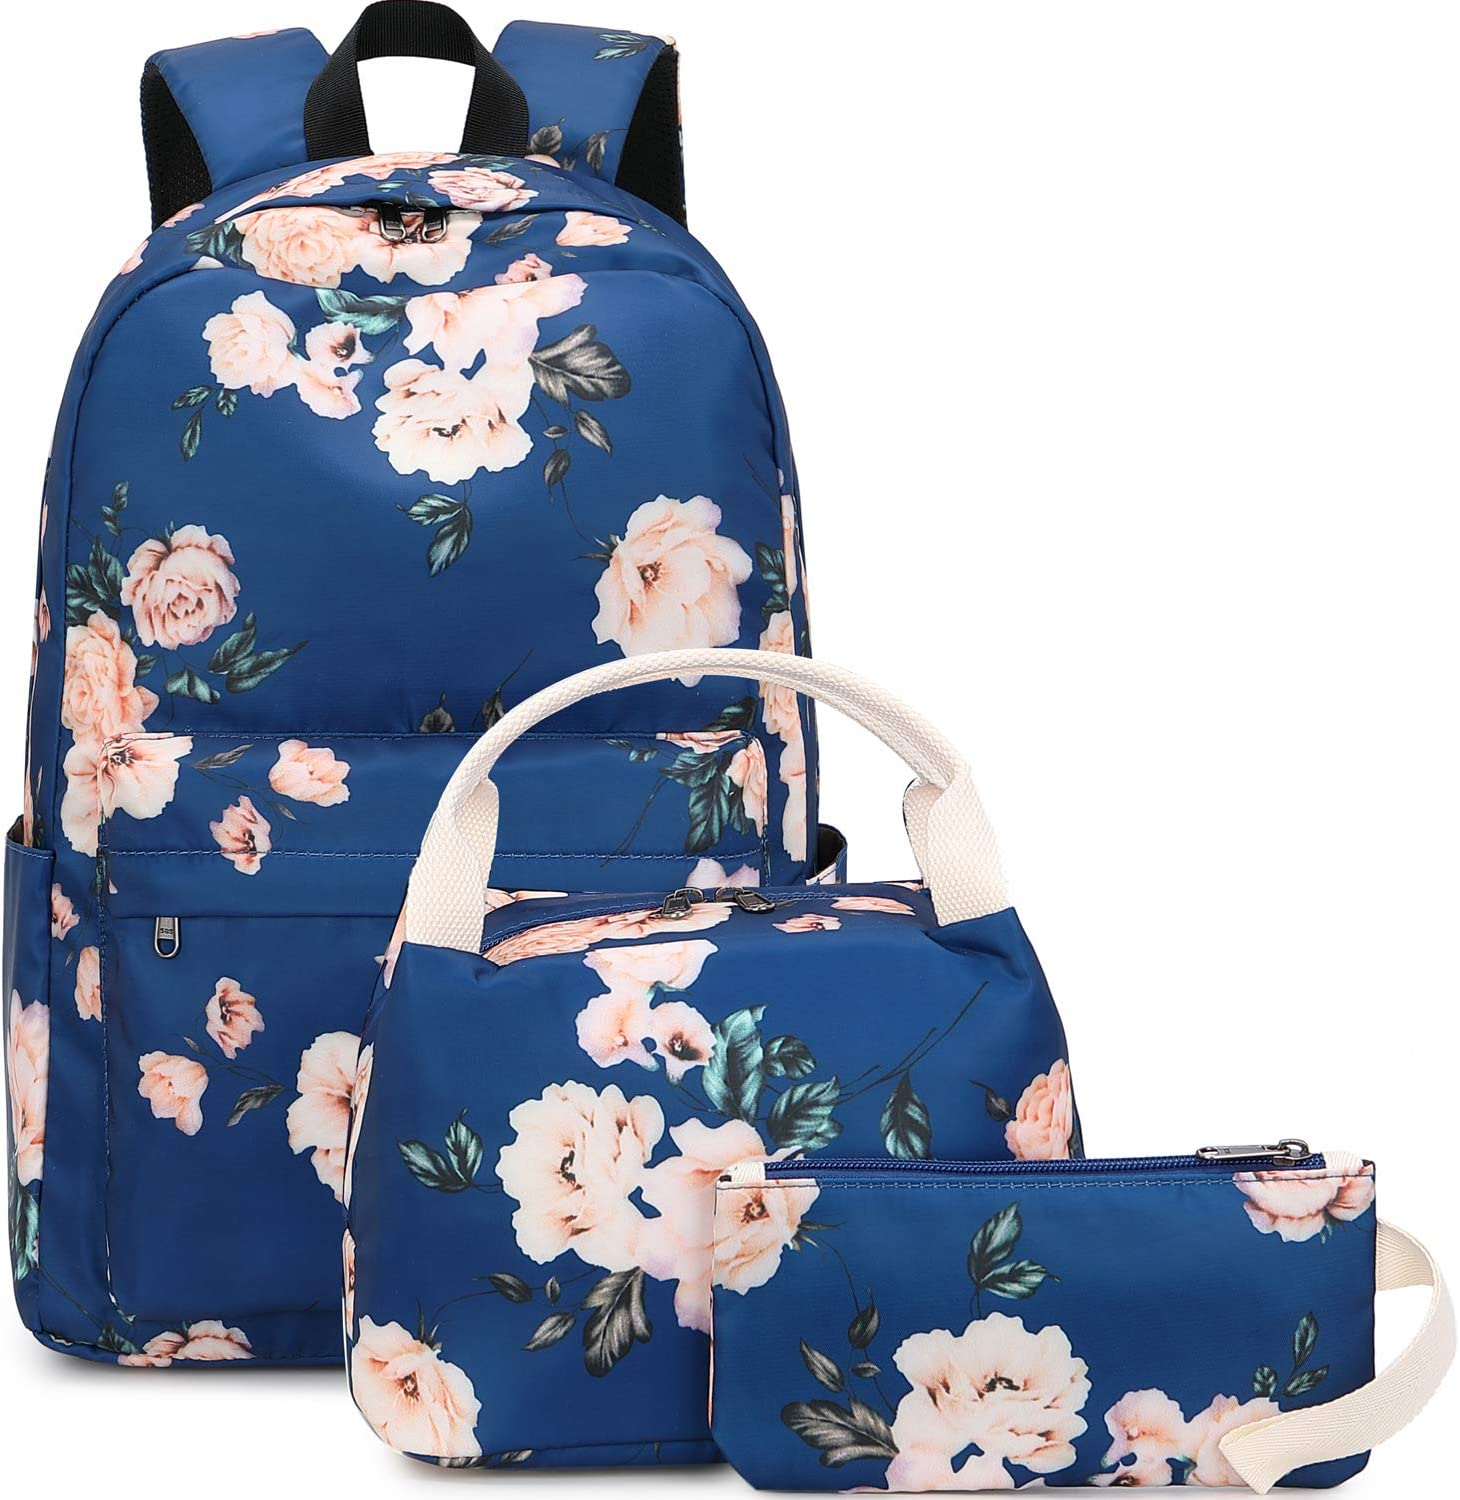 BLUBOON School Backpack Set Canvas Teen Girls Bookbags 15 inches Laptop Backpack Kids Lunch Tote Bag Clutch Purse (E0066 Navy Blue)